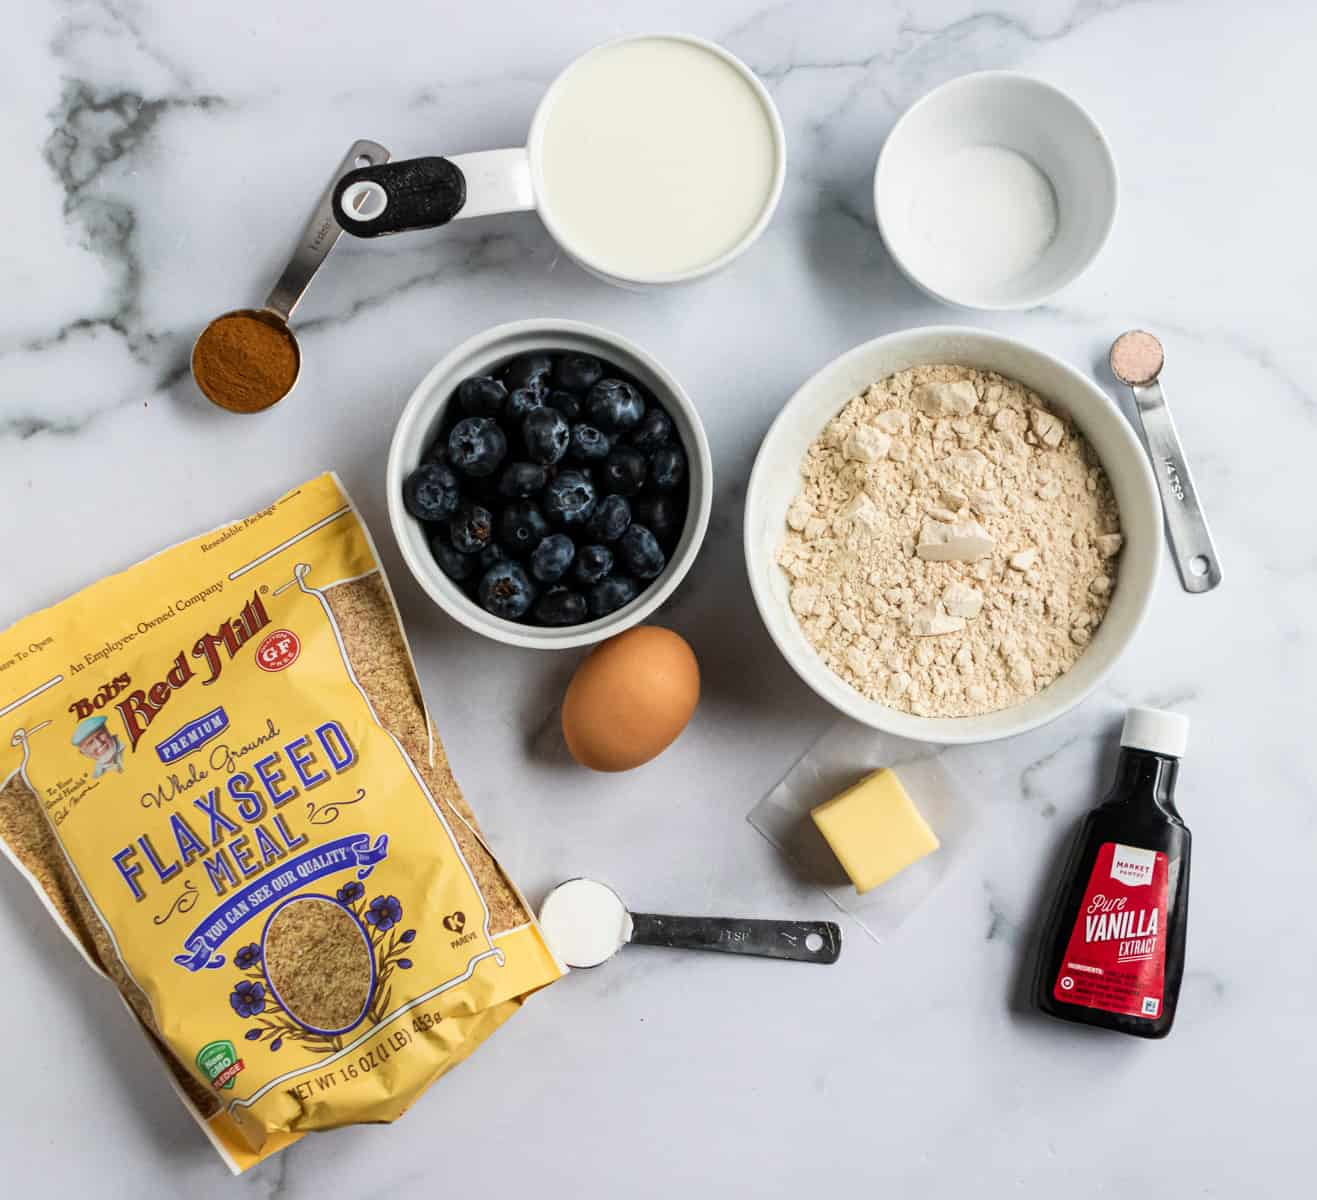 Ingredients to make whole wheat blueberry flax pancakes.